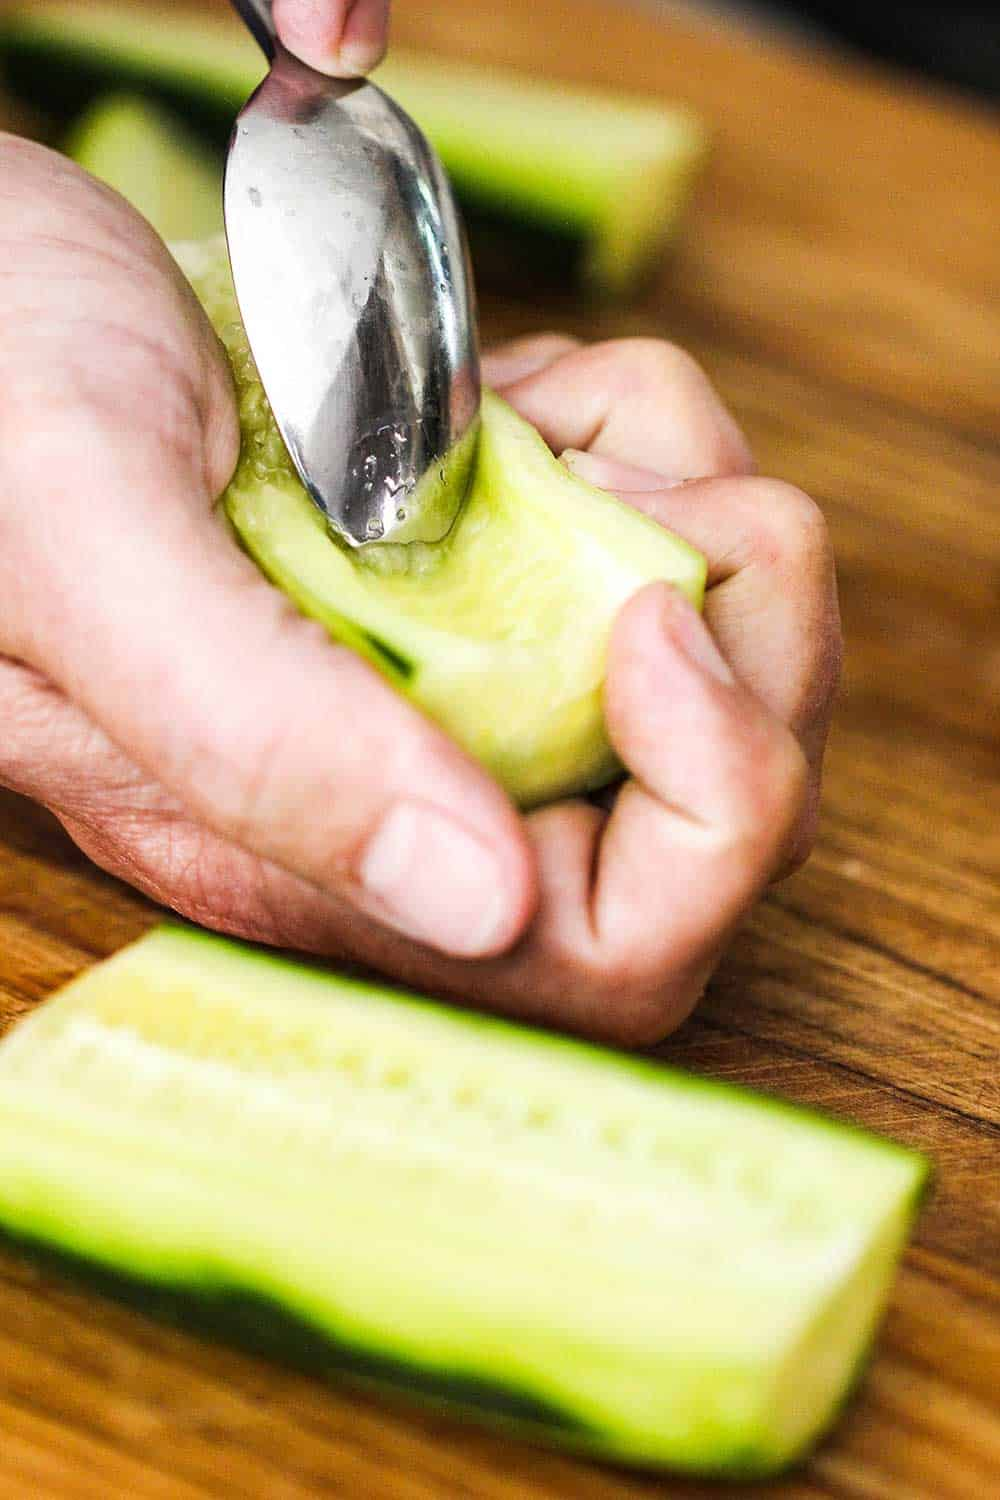 Use a spoon to scoop out the seeds of the cucumber.